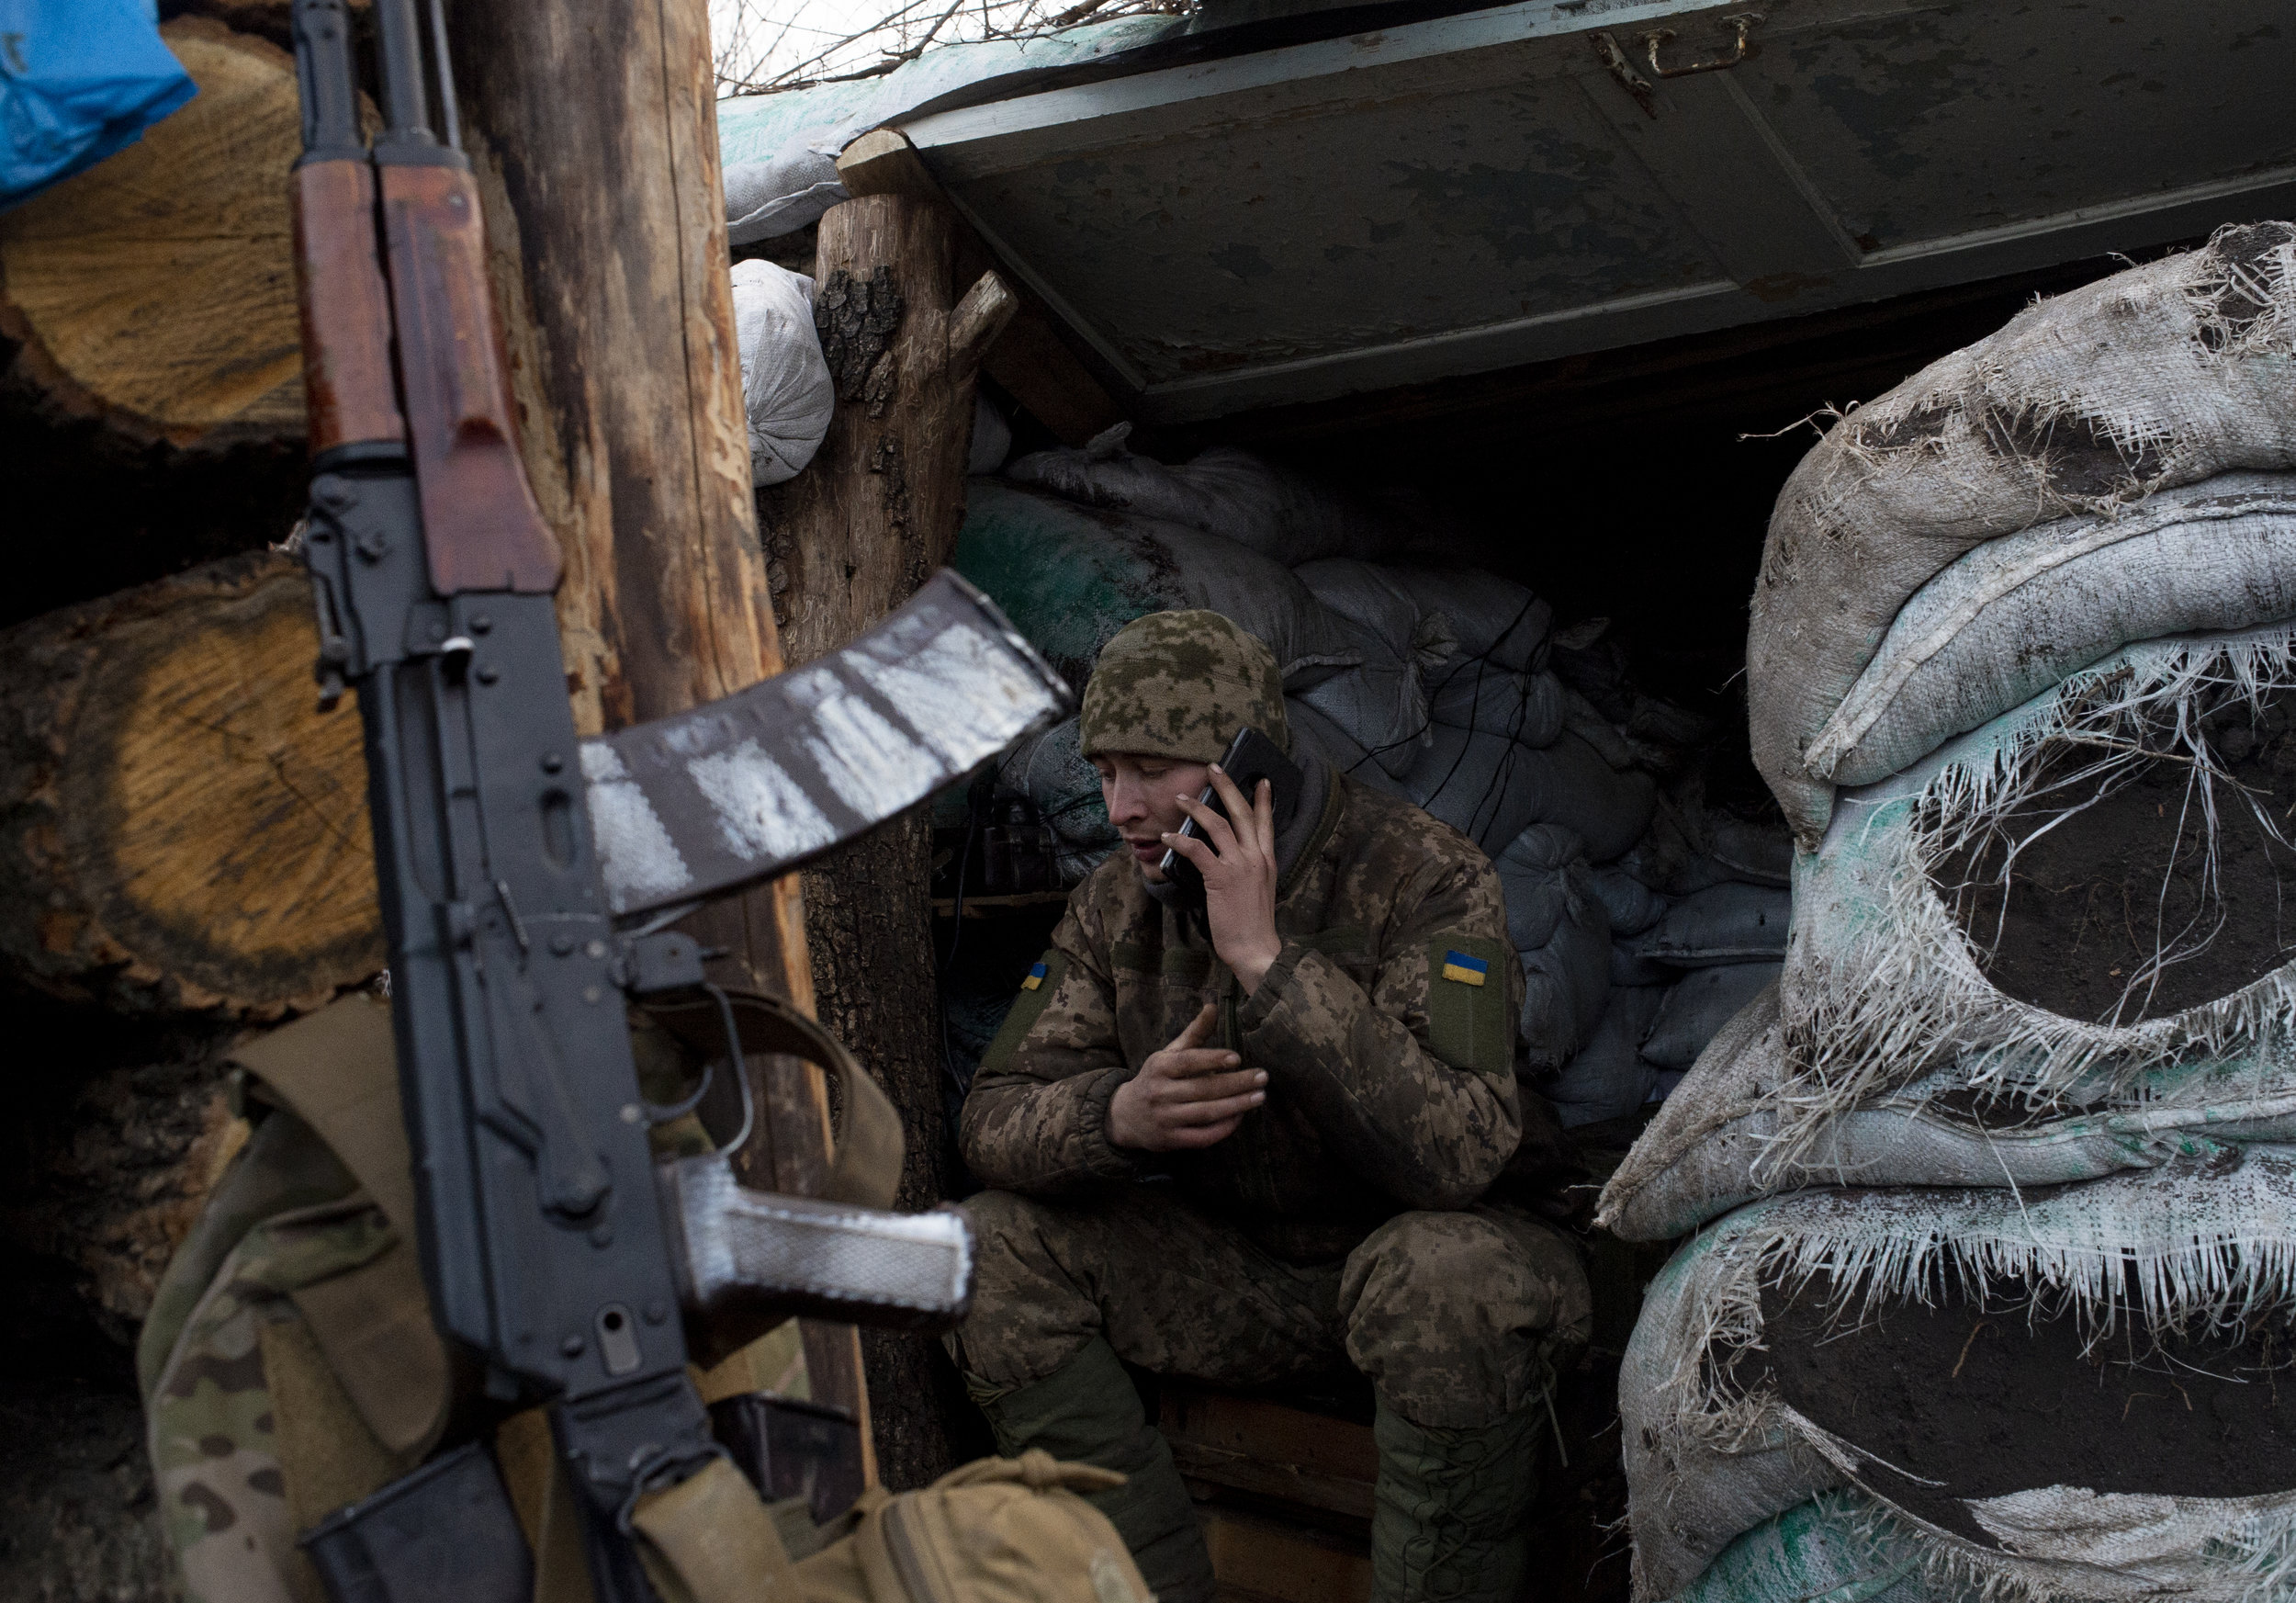 Alexy, a corporal in the 54th Mechanized Rifle Brigade, speaks to his wife on the phone while on duty at Point Zero in Zolote. The Donbas War is marked by the now stagnant line of contact where snipers and artillery reign supreme over troop movement.